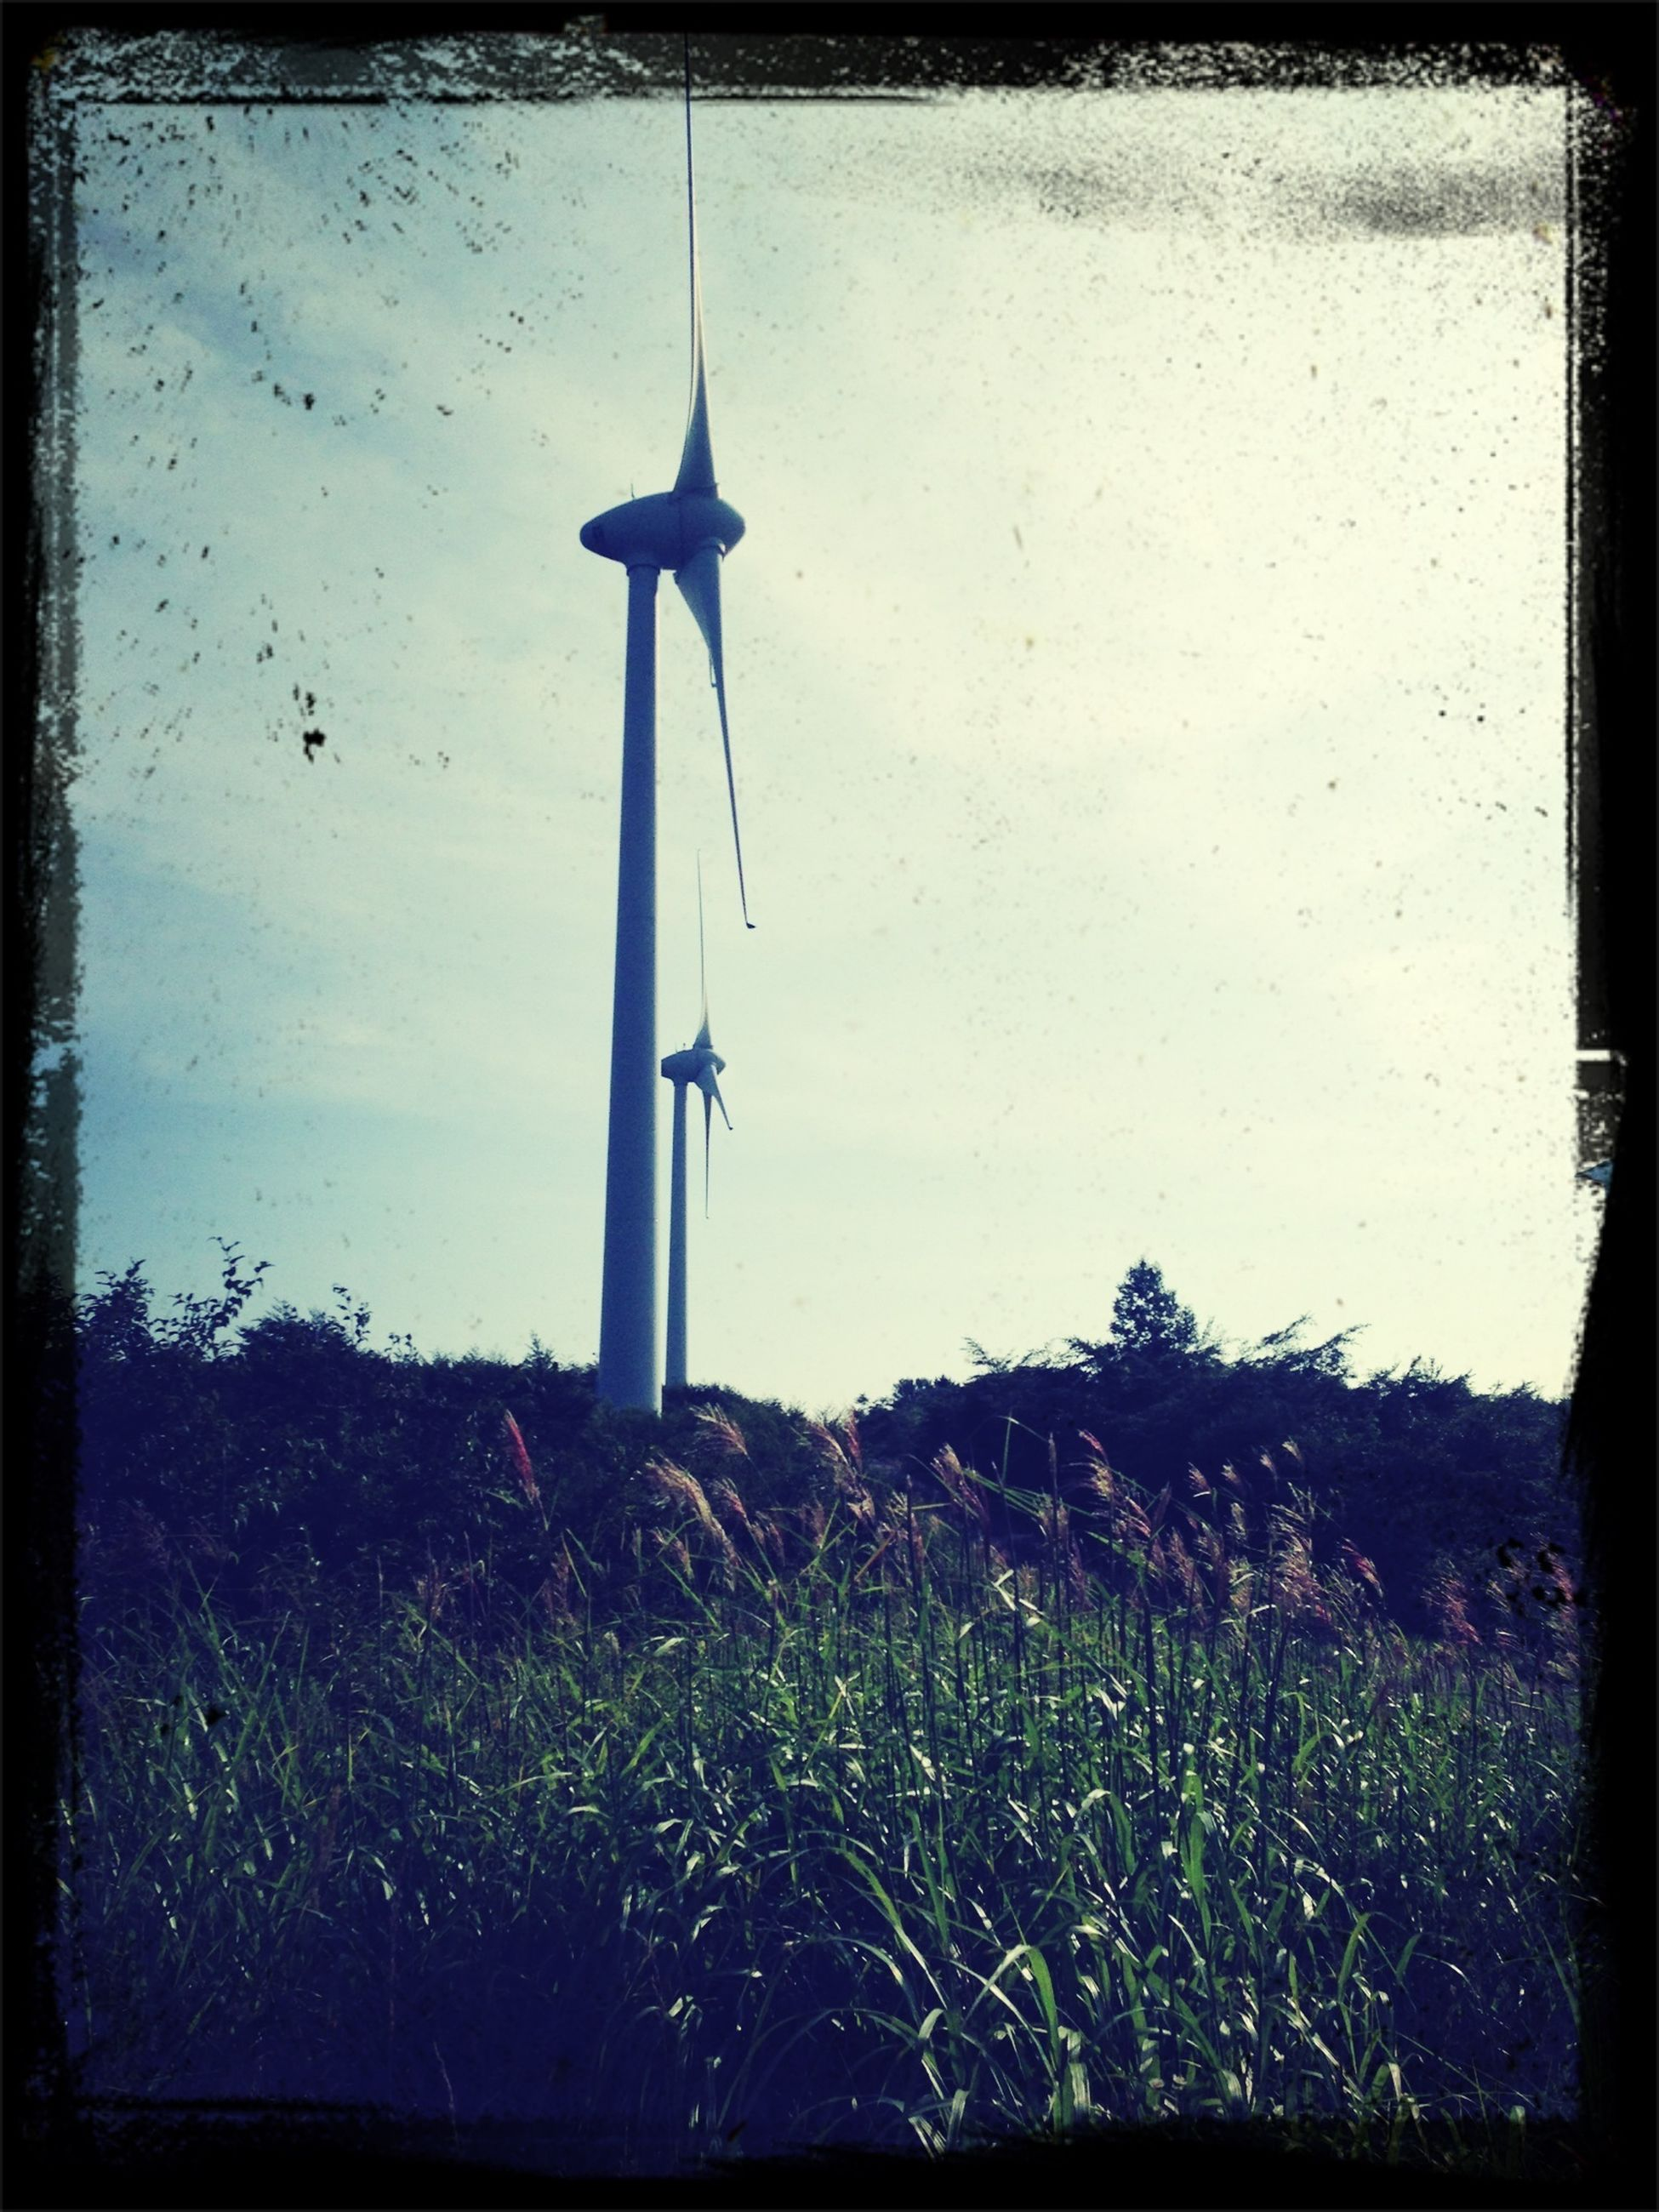 transfer print, auto post production filter, field, wind power, alternative energy, sky, wind turbine, renewable energy, environmental conservation, windmill, grass, rural scene, fuel and power generation, growth, plant, landscape, nature, technology, low angle view, tree